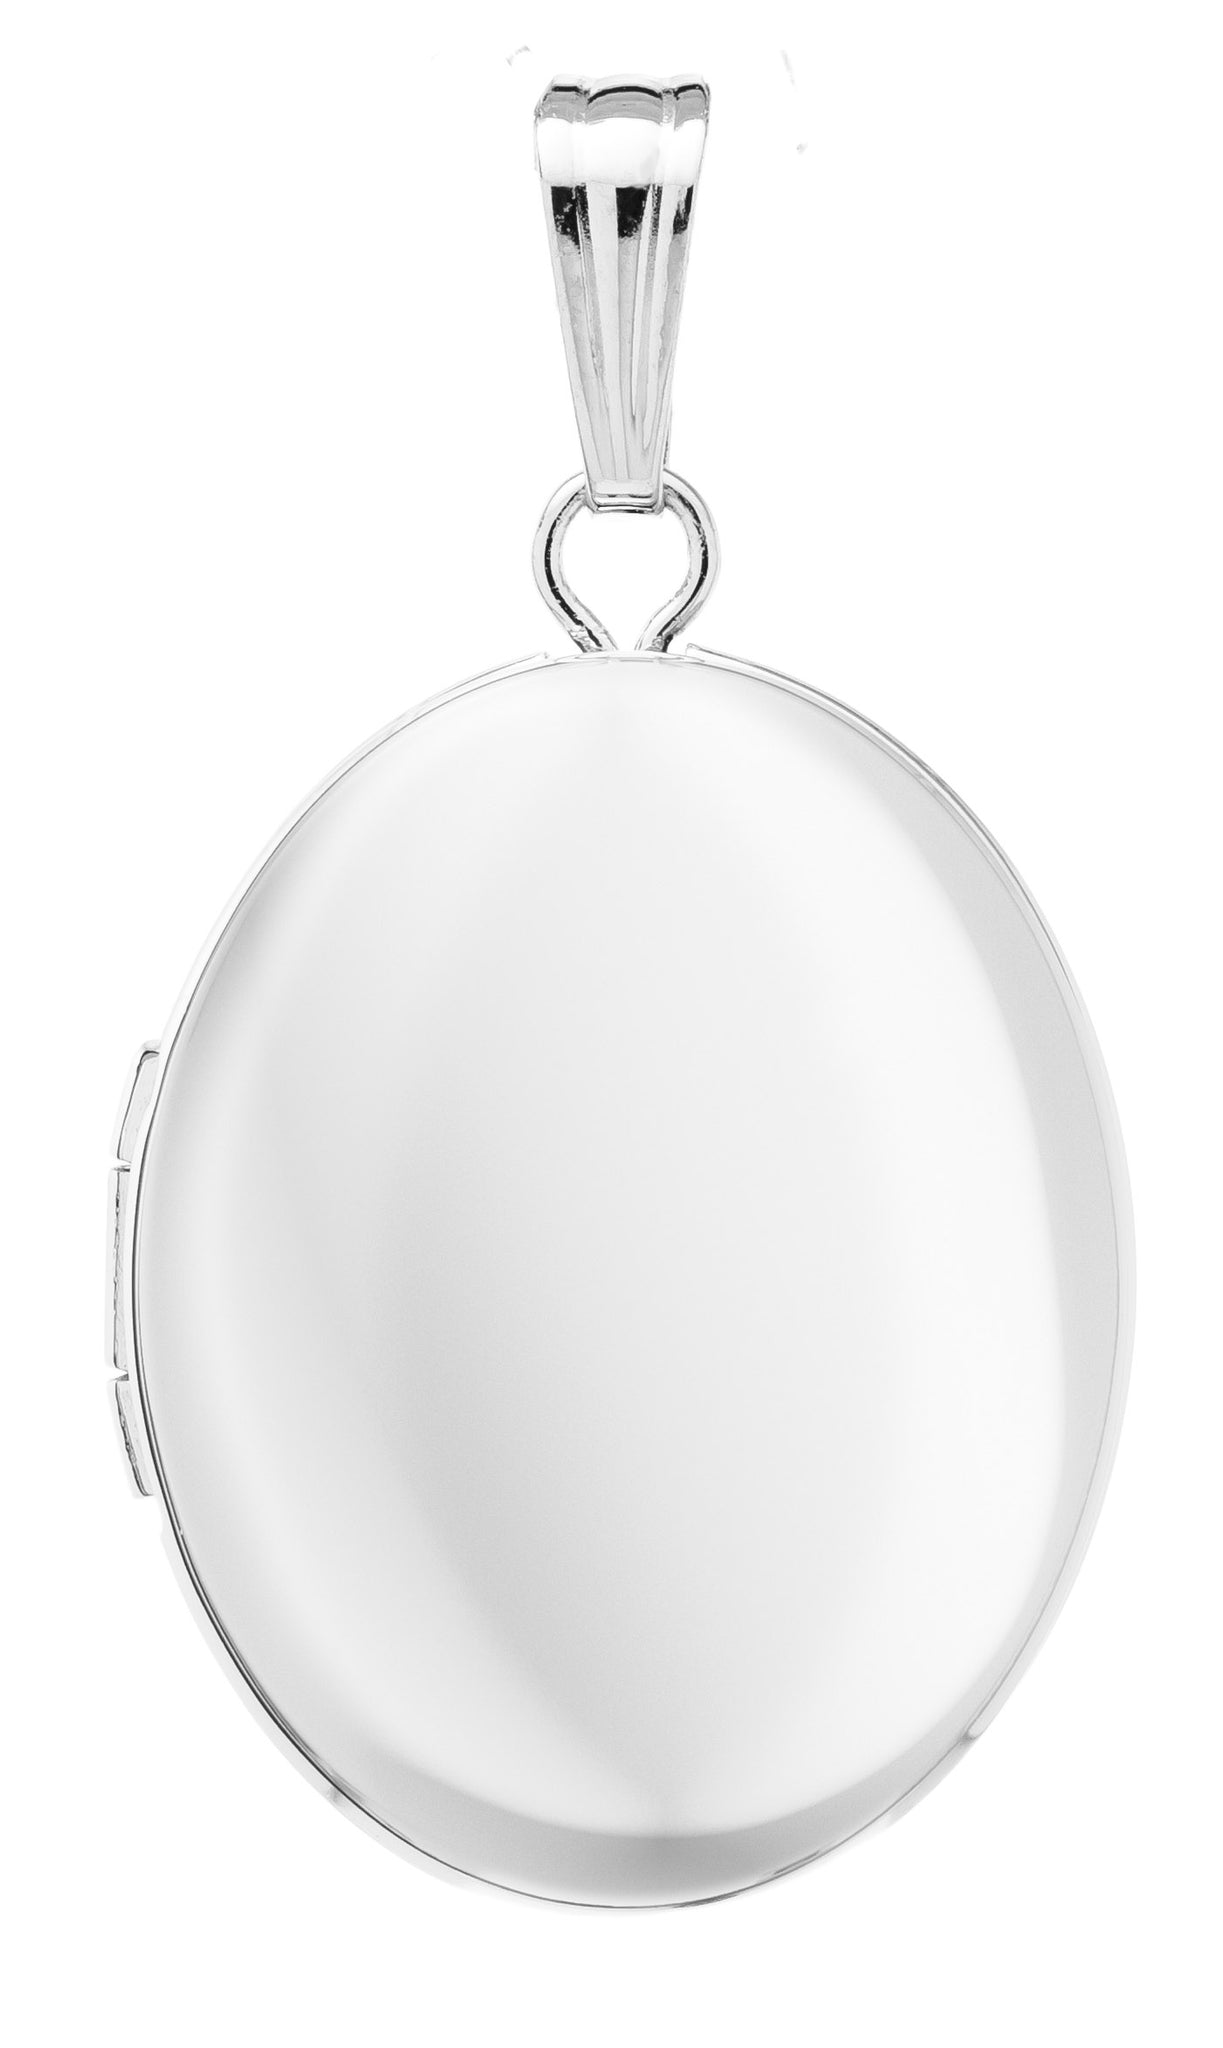 An adult-size plain polished sterling silver extra small oval locket on a Rolo chain necklace.  Locket: 17 x 14mm  Chain length: 18""